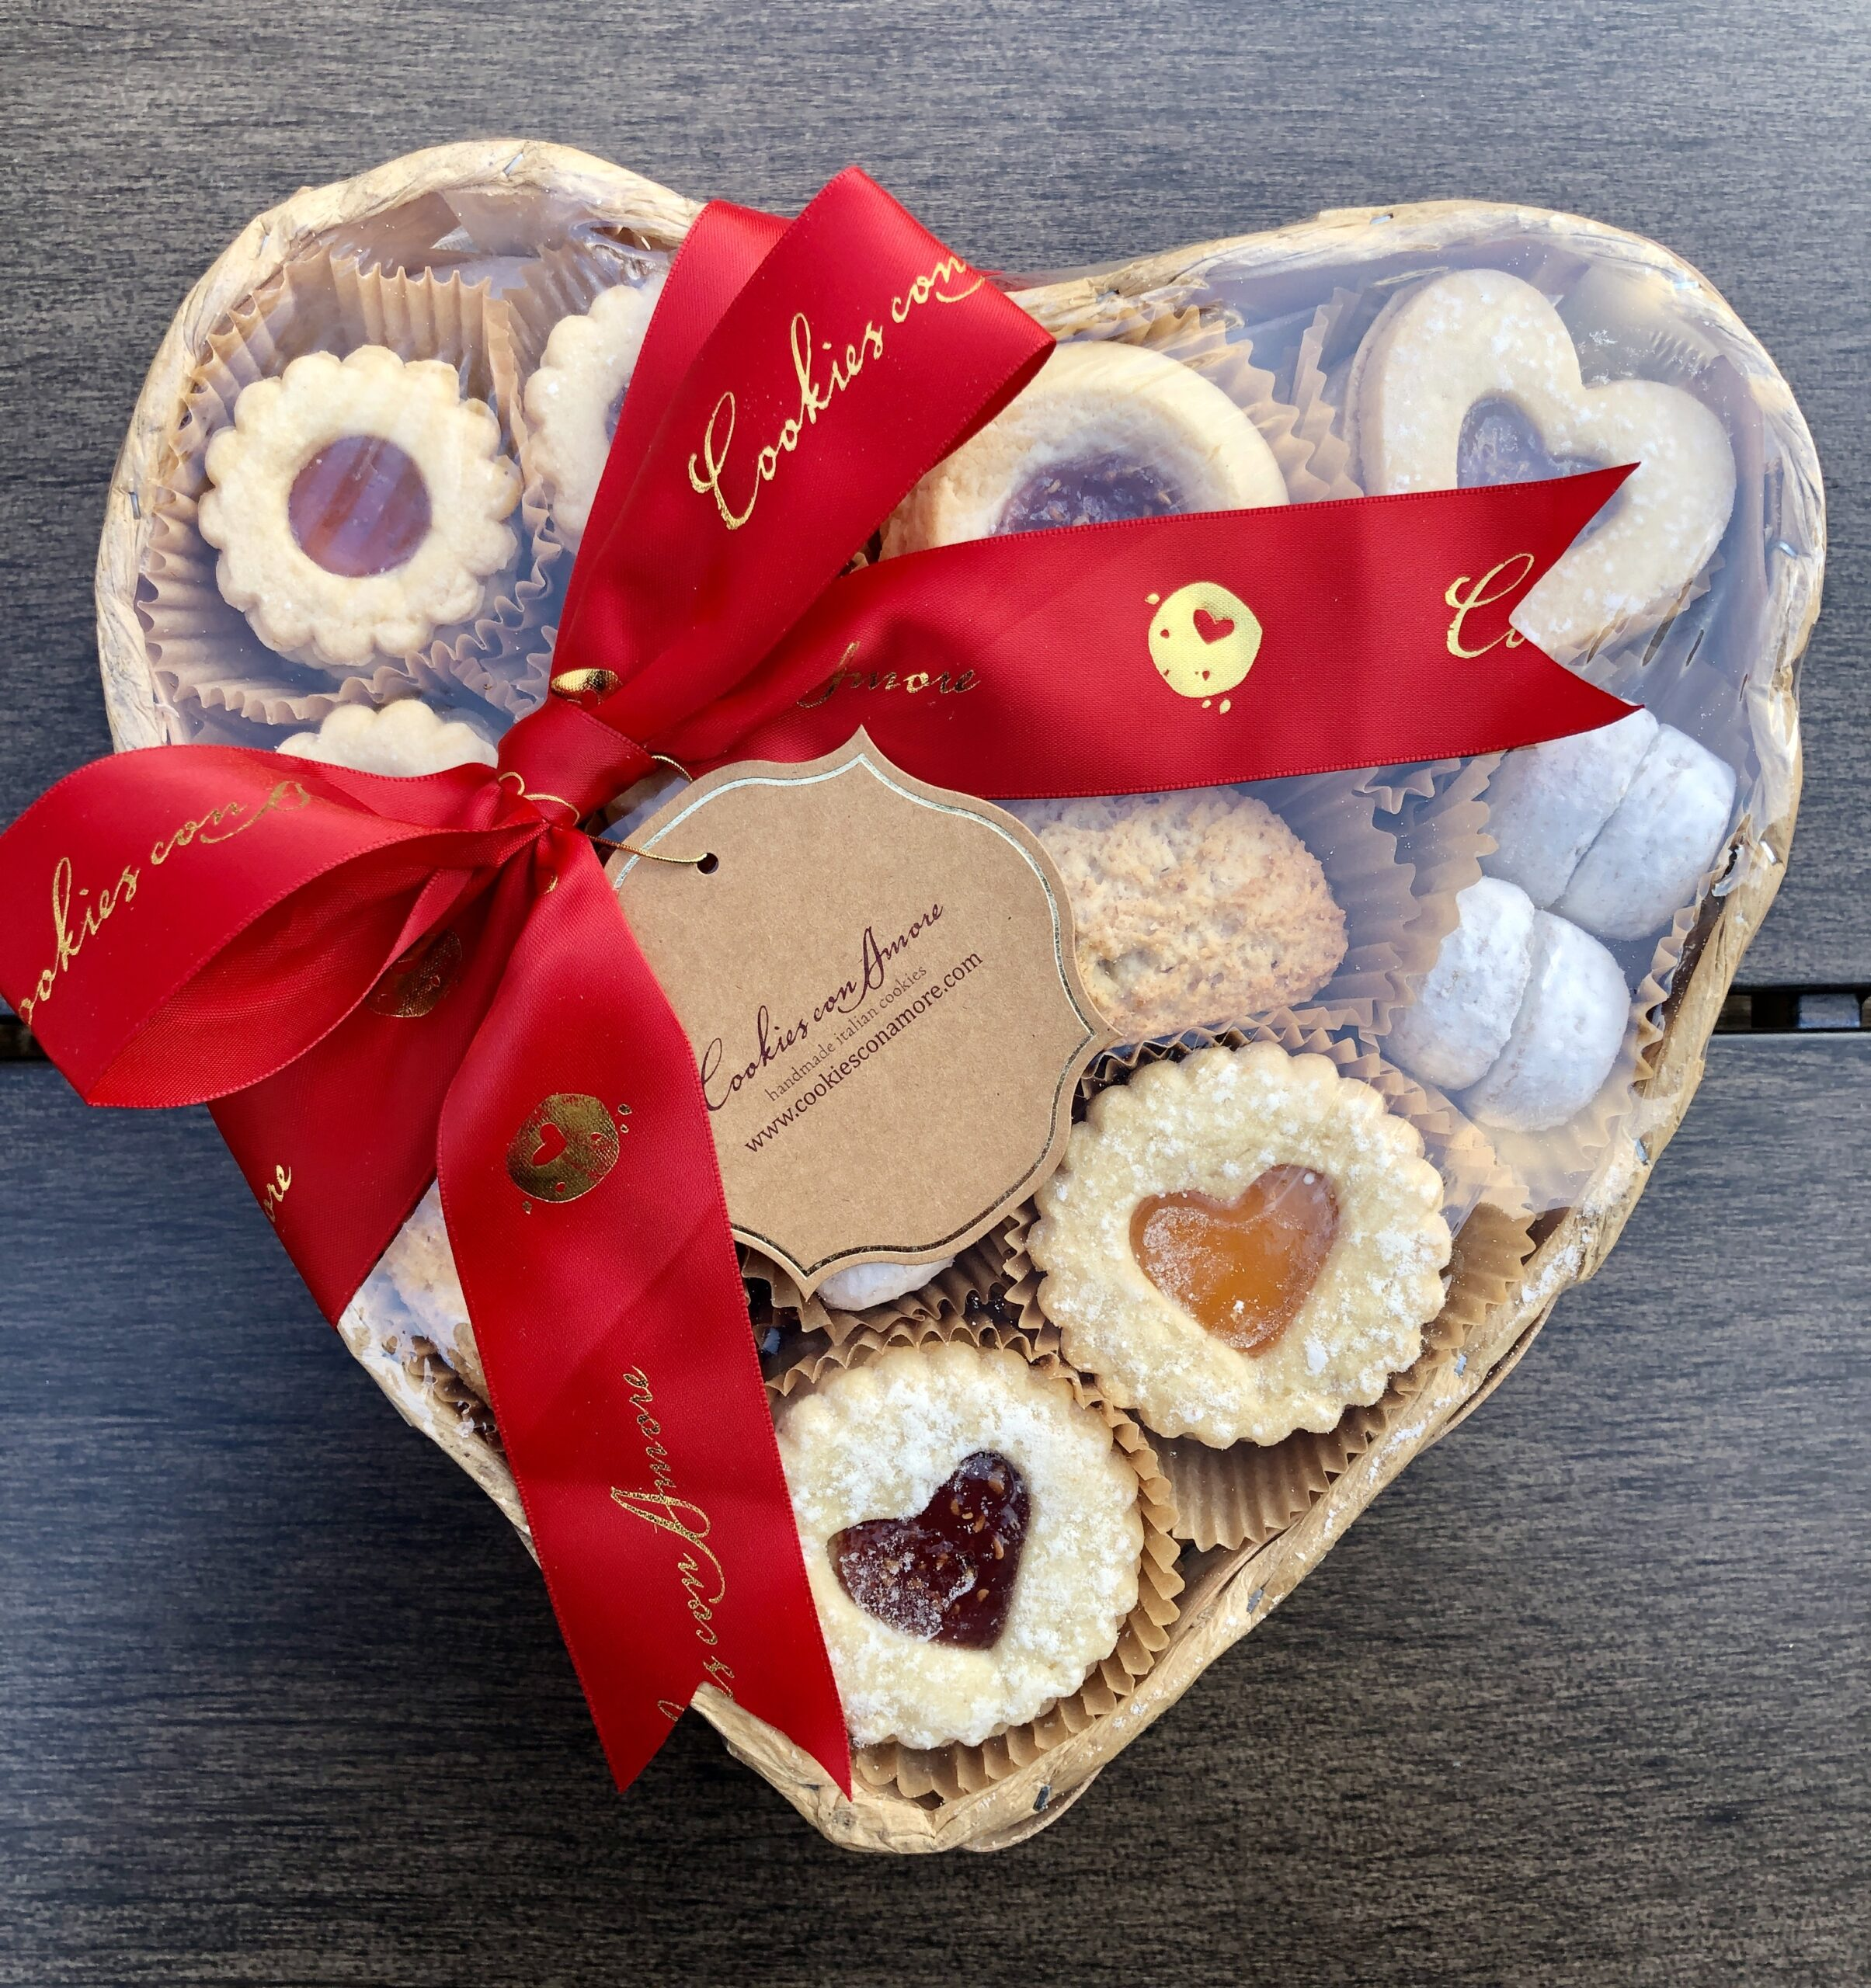 cookies con amore heart shaped basket